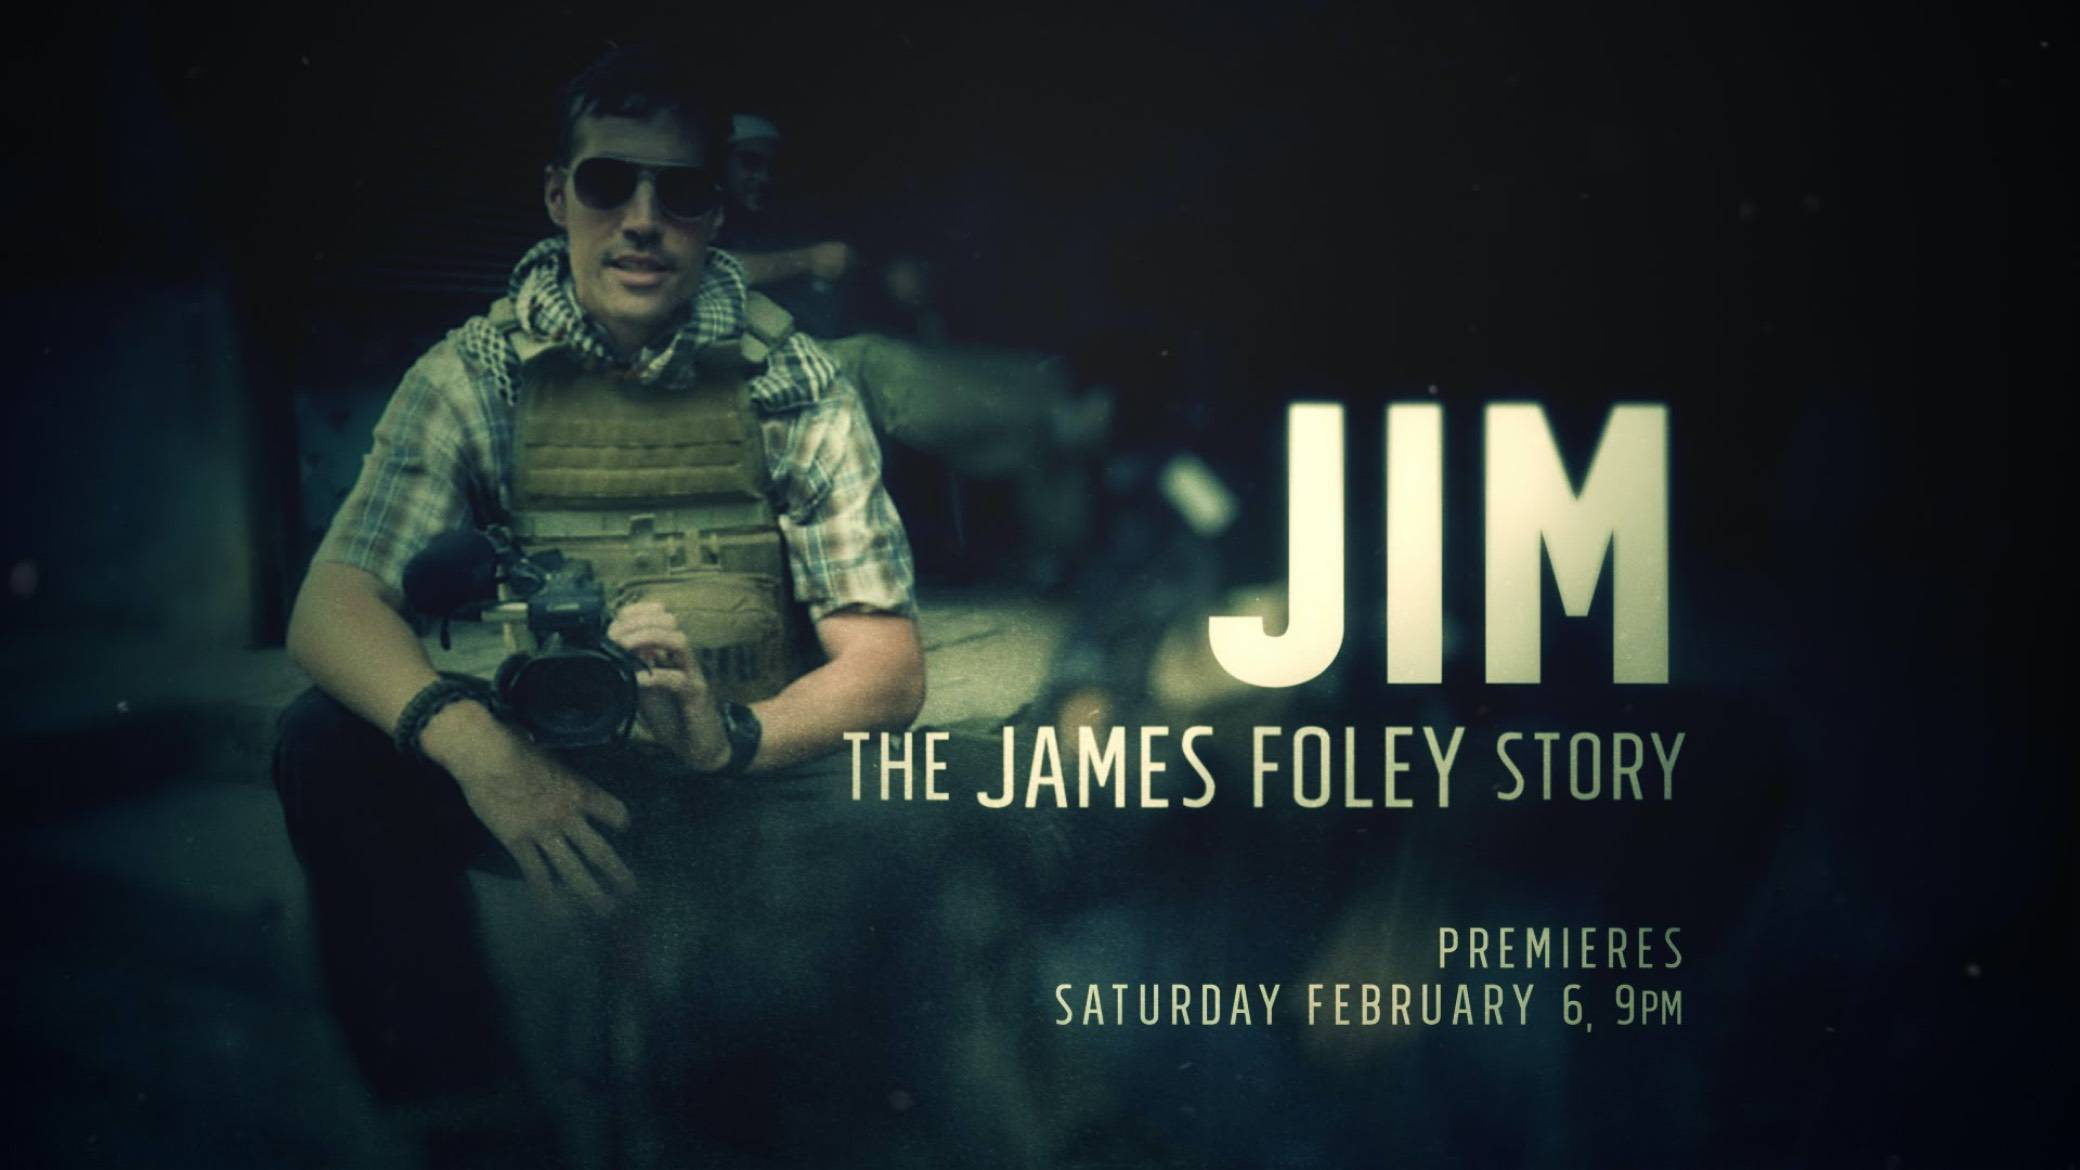 jim-the-james-foley-story image